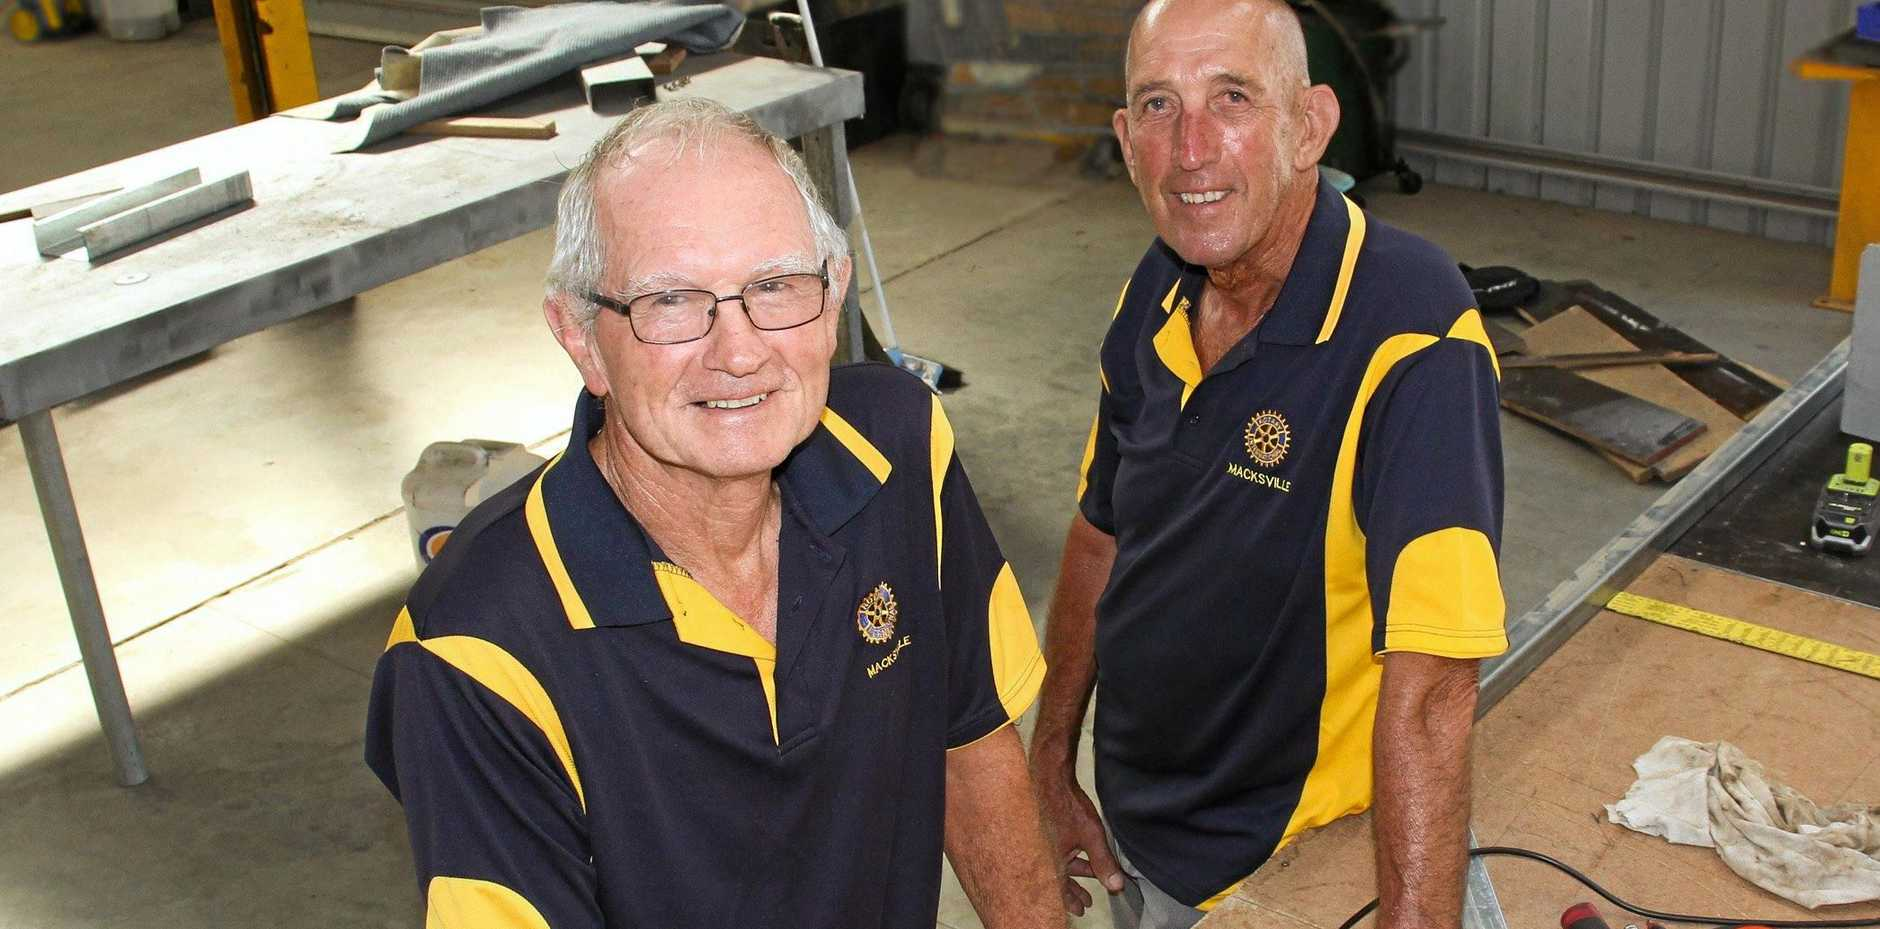 MUSTERING UP: Rod Edwards and David Ainsworth of Macksville Rotary Club work on the new stage ahead of the first ever Macksville Music Muster.